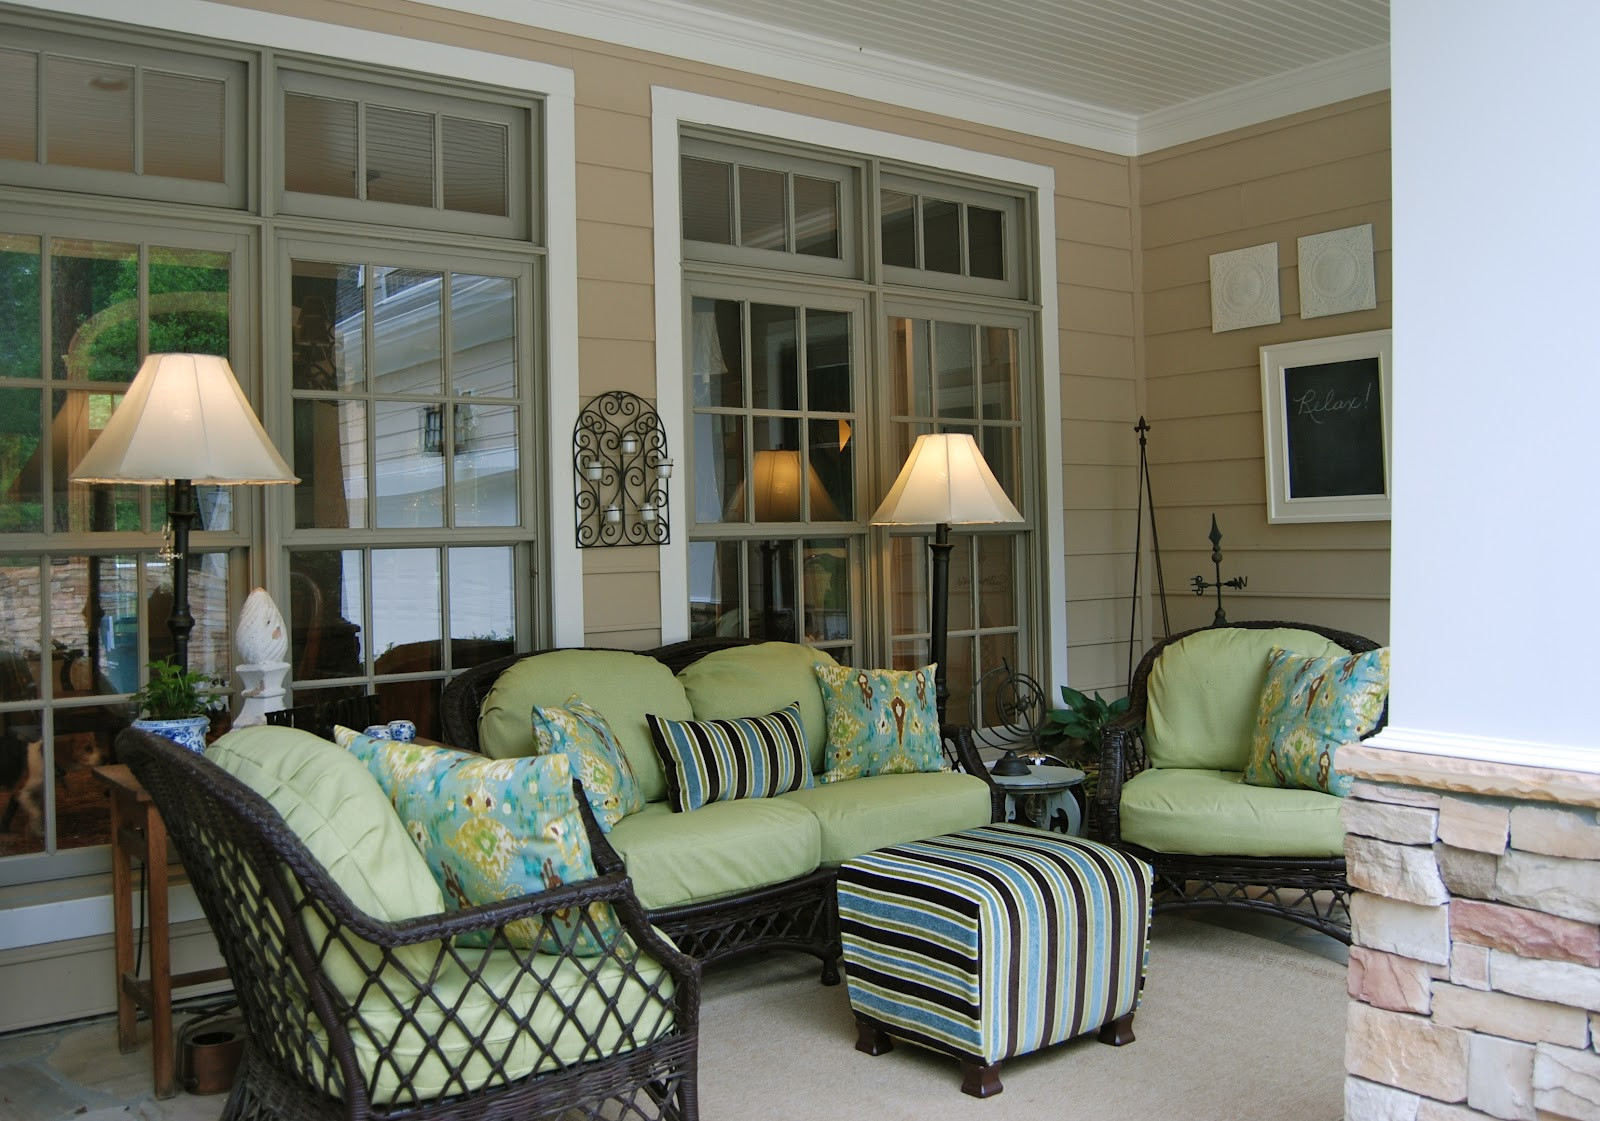 Best ideas about Porch Furniture Ideas . Save or Pin 25 Inspiring Porch Design Ideas For Your Home Now.